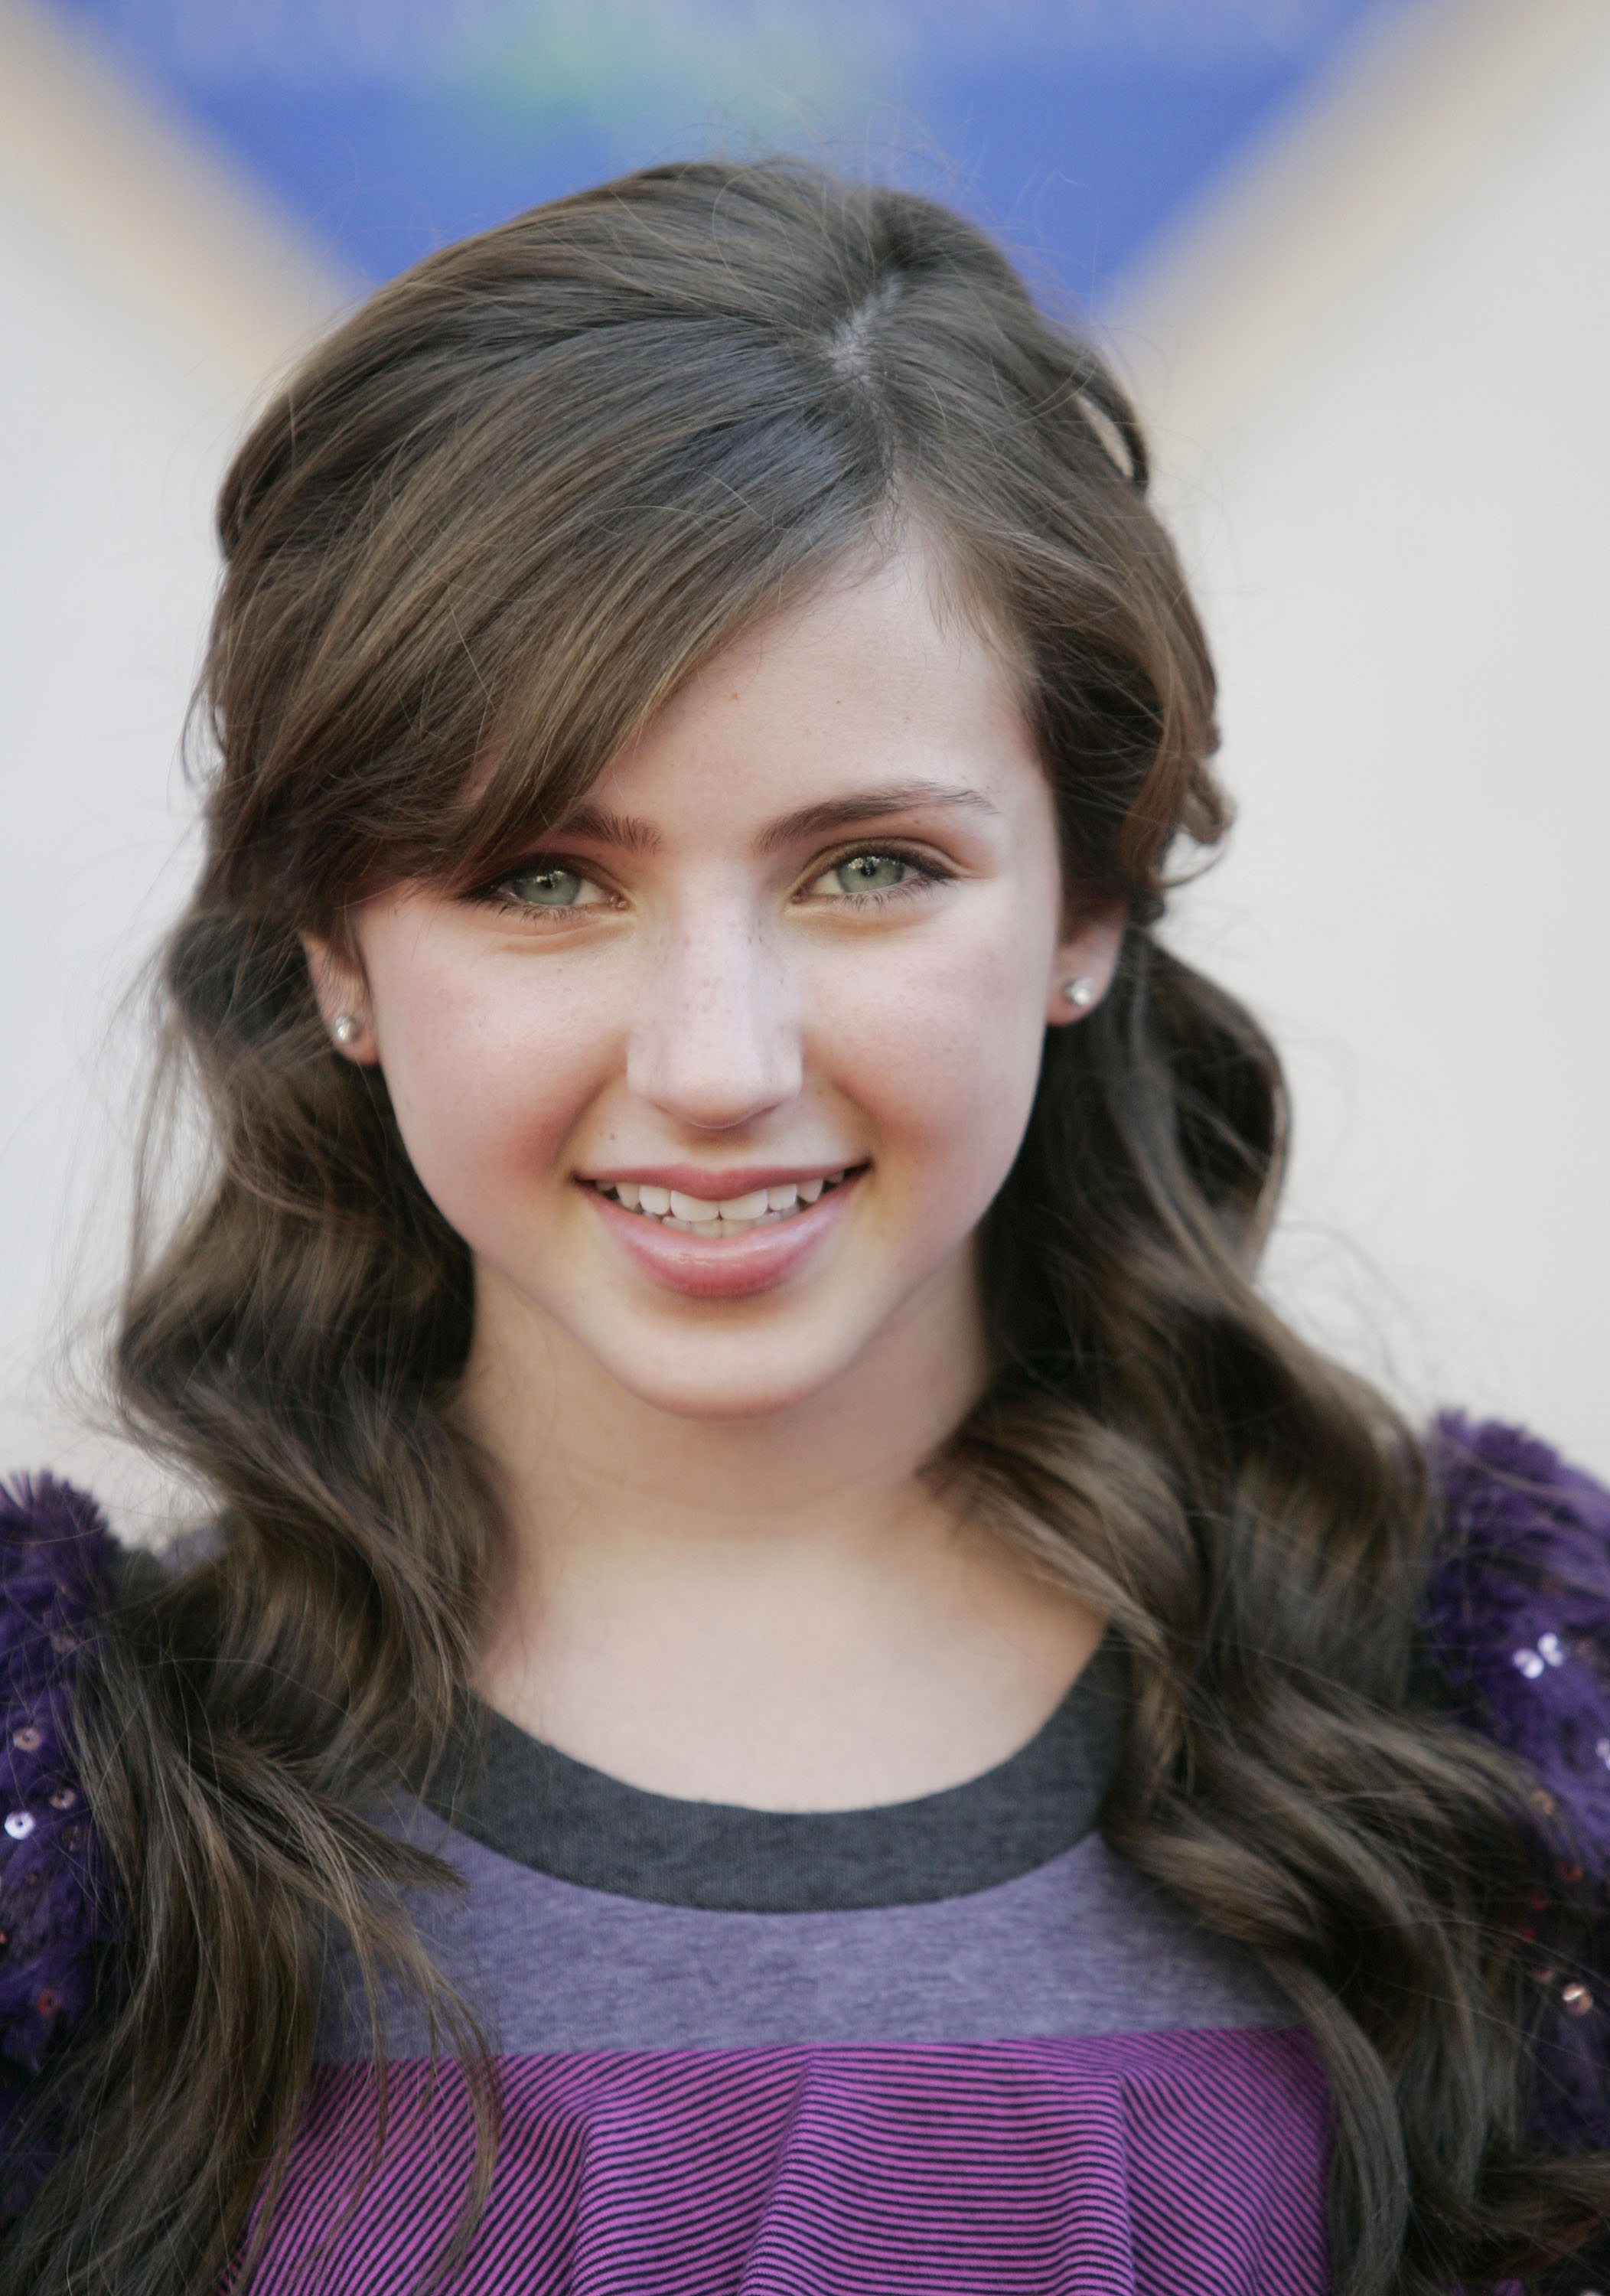 Sat 9 May 2015 Ryan Newman HD Backgrounds for PC Full HDQ Pictures 2104x3000